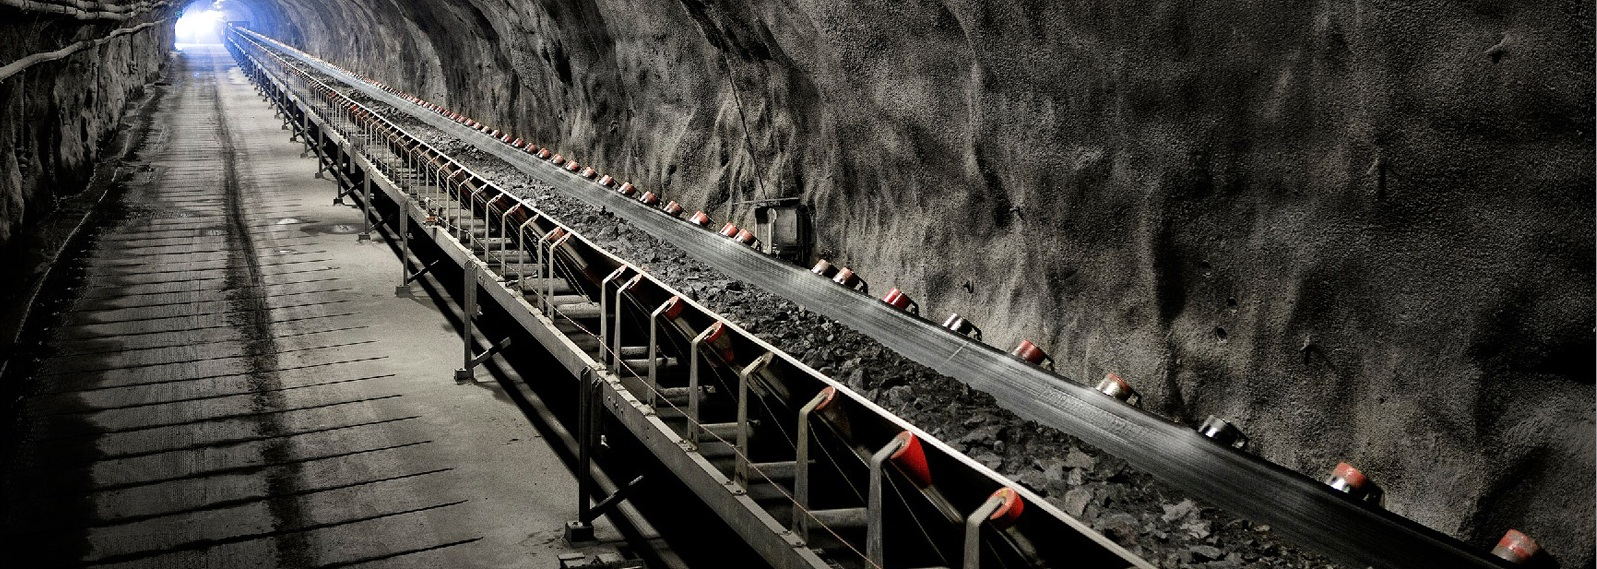 ContiTech: 24/7 Smart Service for the Toughest Mining Conditions